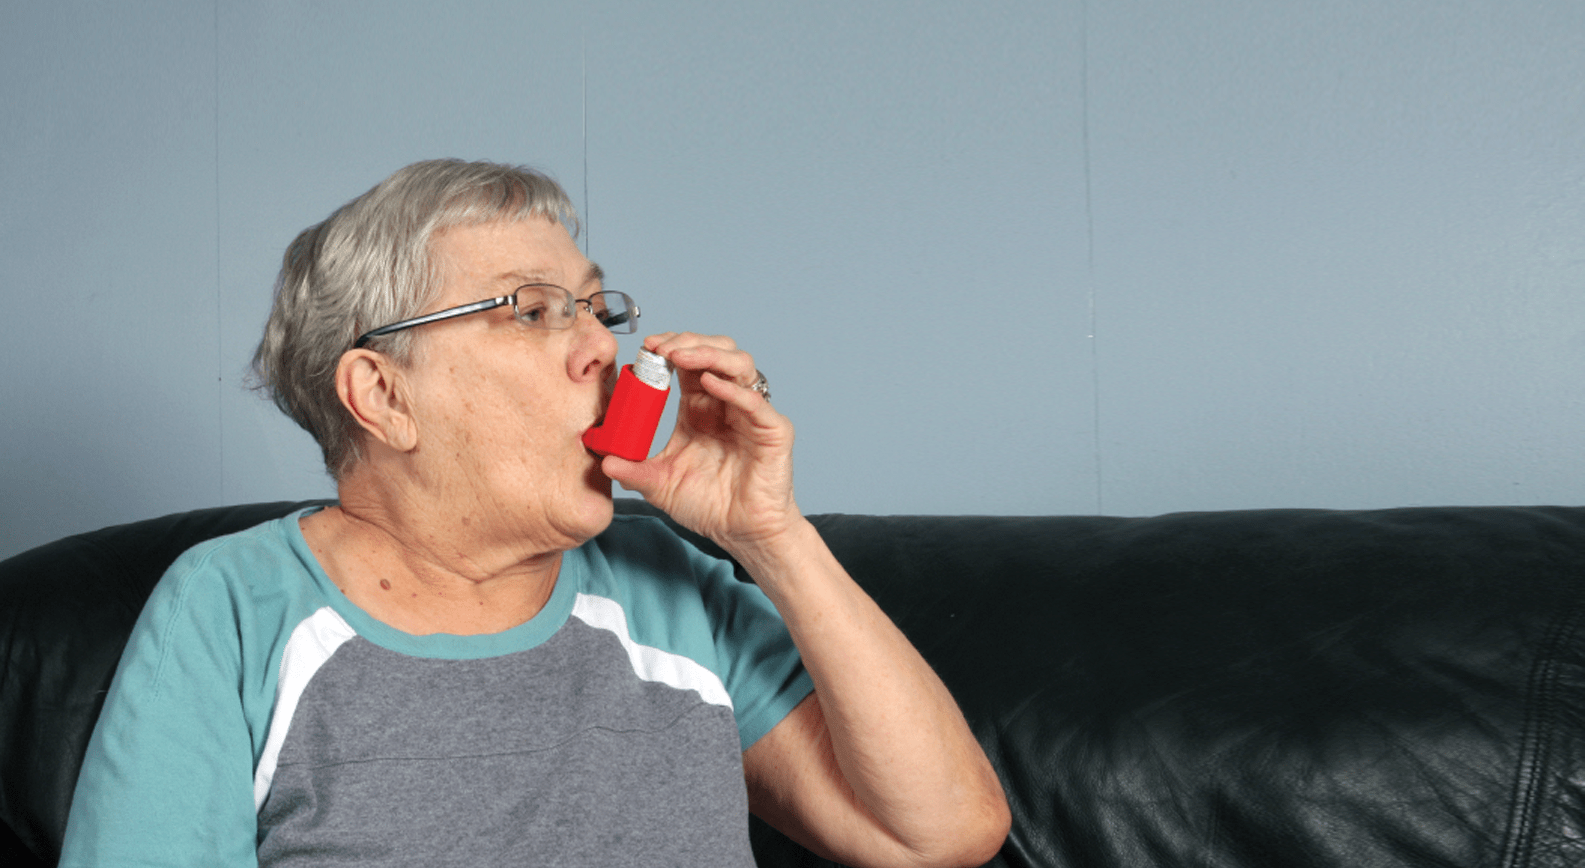 asthma-inhaler-elderly-woman